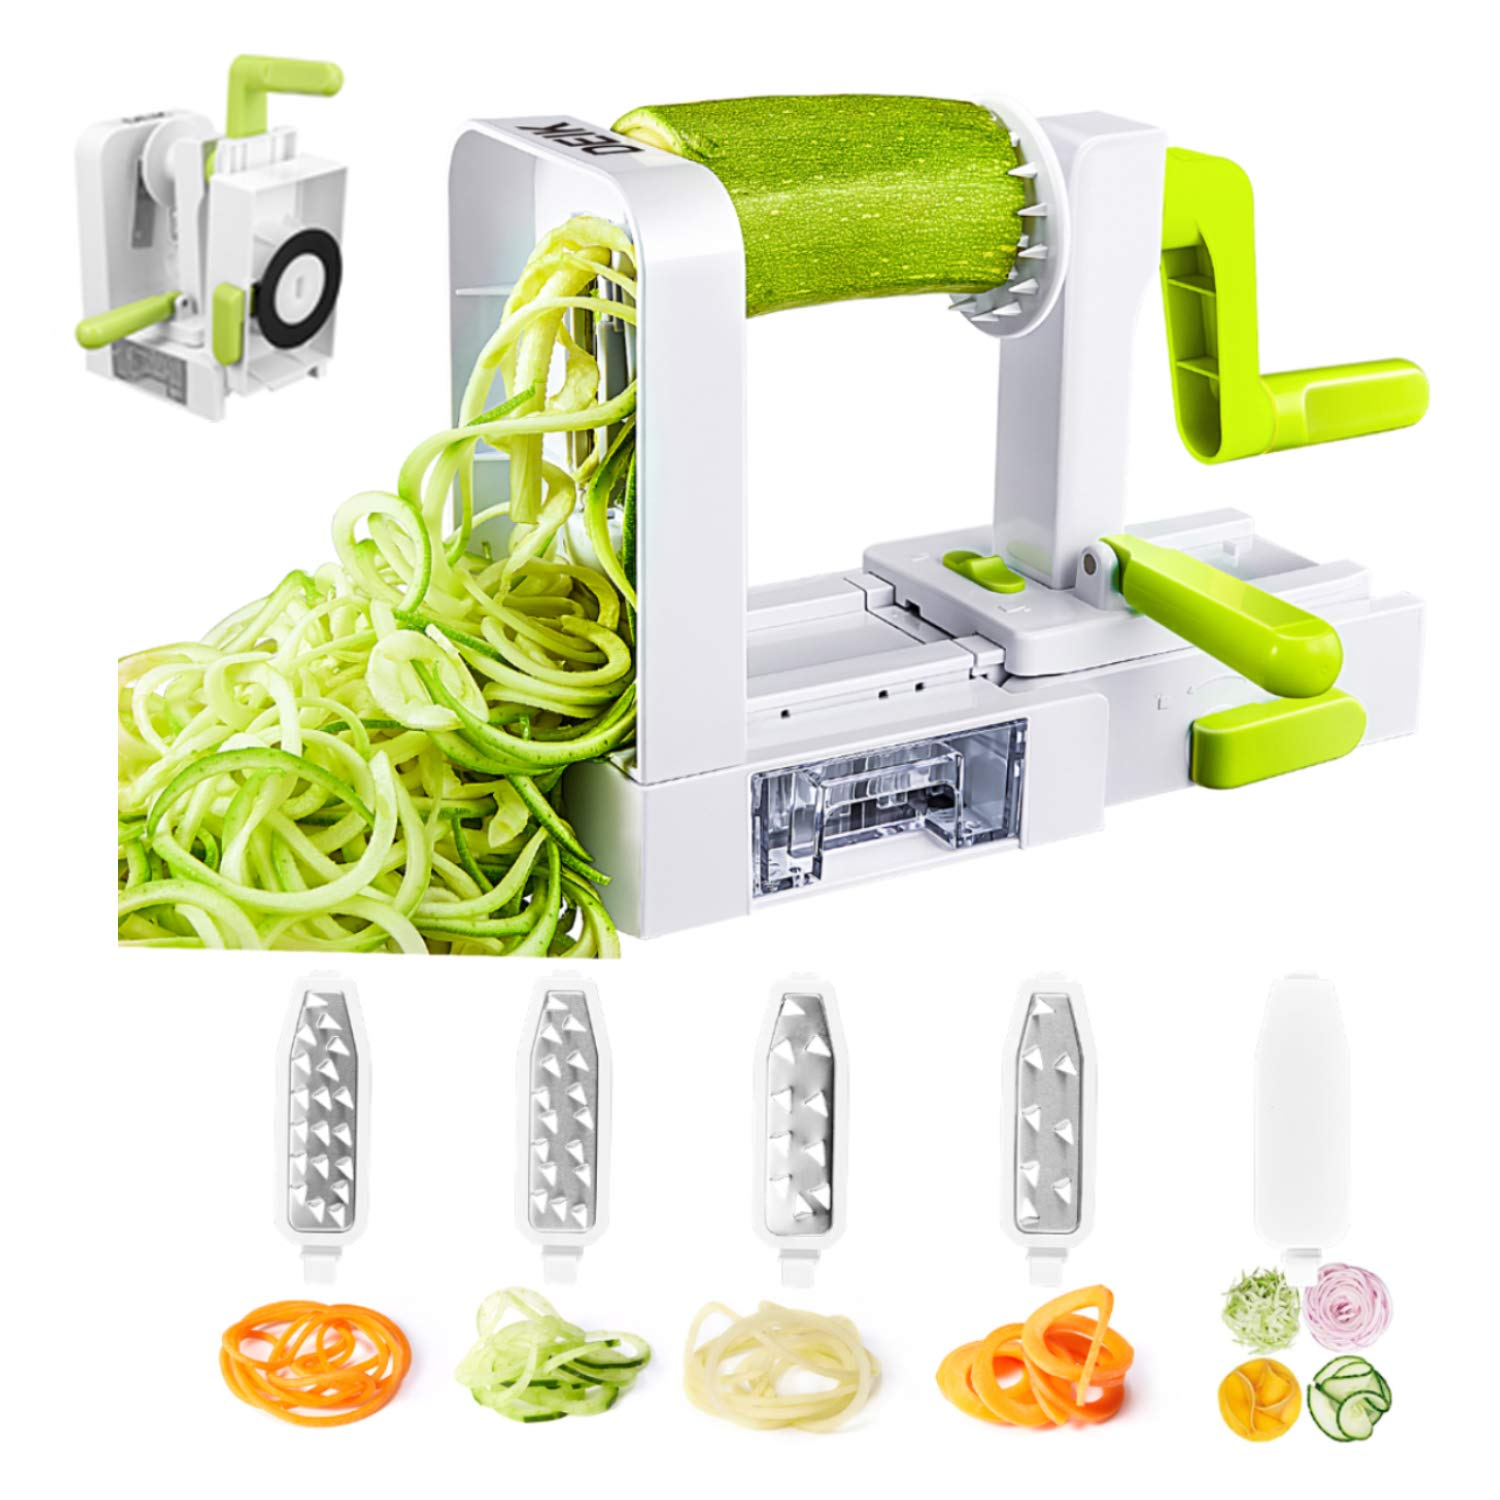 Spiralizer Vegetable Slicer, Deik Spiral Slicer 5 Blade, 2018 New Model Foldable, Strongest Heaviest Duty Veggie Pasta and Spaghetti Maker for Low Healthy Carb/Paleo/Gluten-Free by Deik